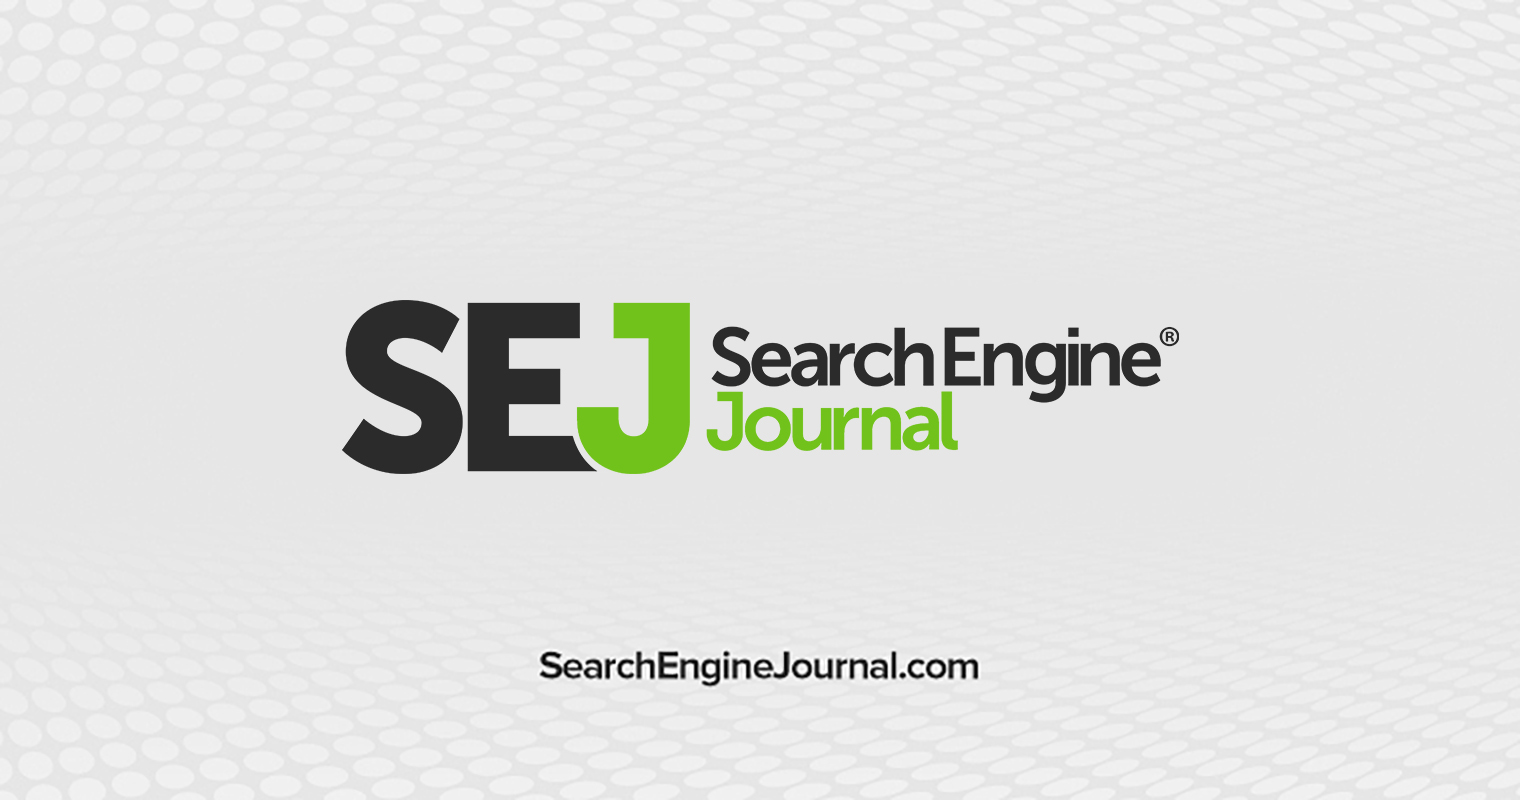 MSN Search Beats Google, Yahoo & Ask.com in Search Engine Relevancy Study